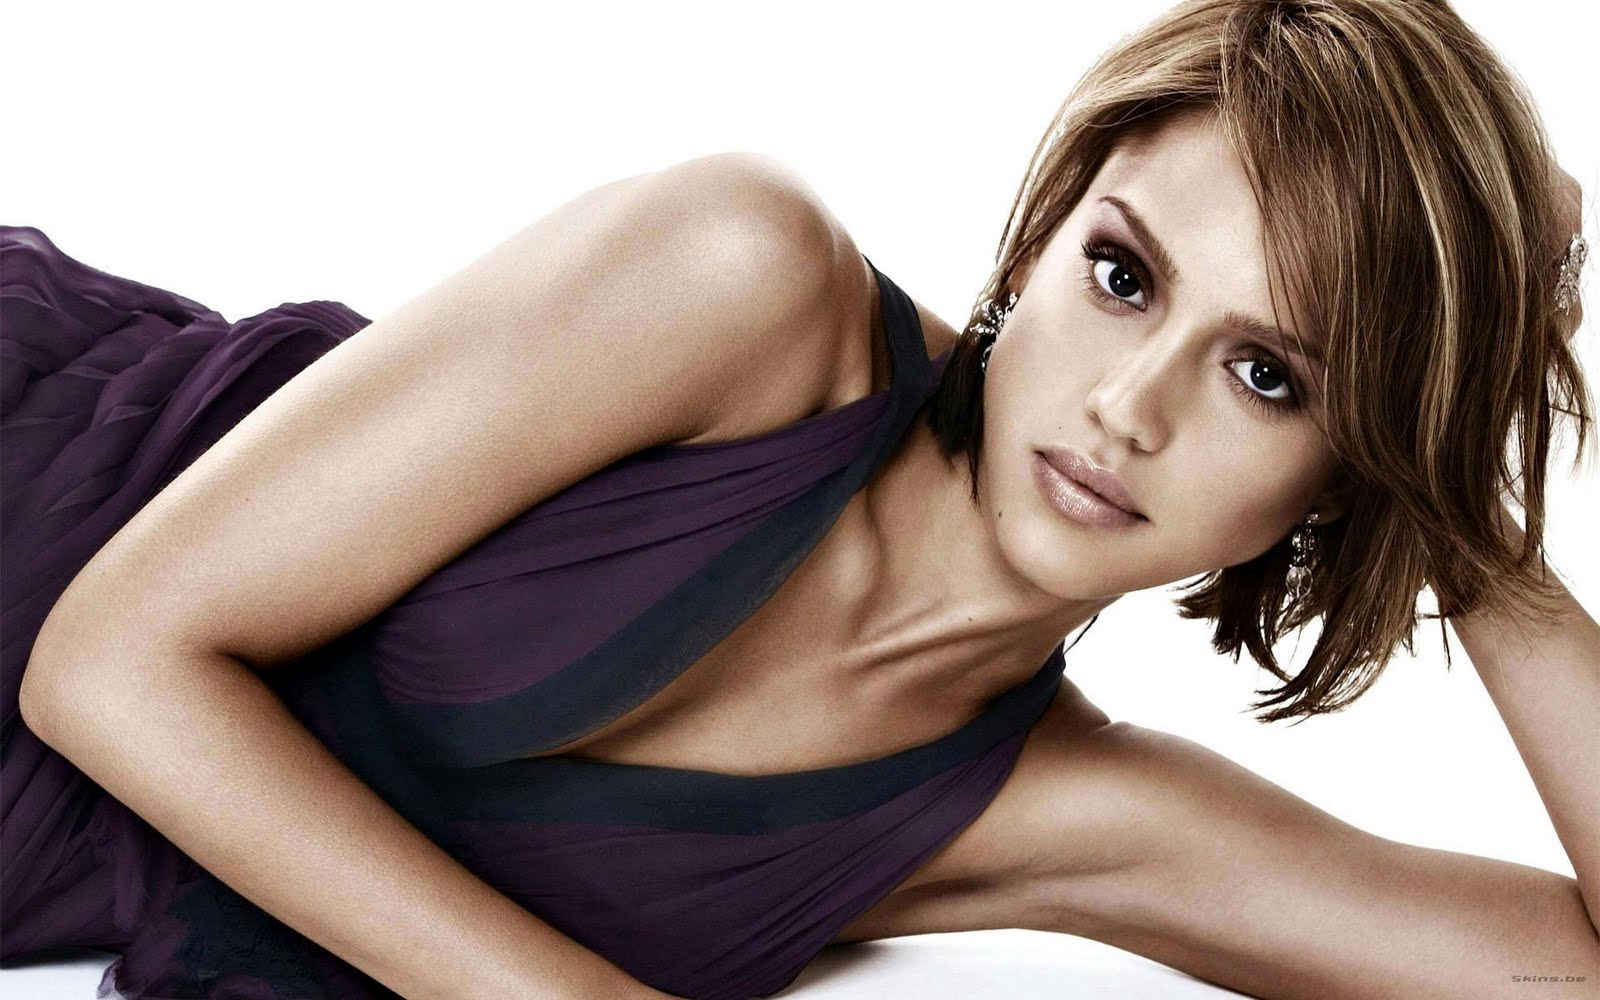 images actress hollywood naked: jessica alba: imagesactresshollywoodnaked.blogspot.com/2011/06/jessica-alba.html